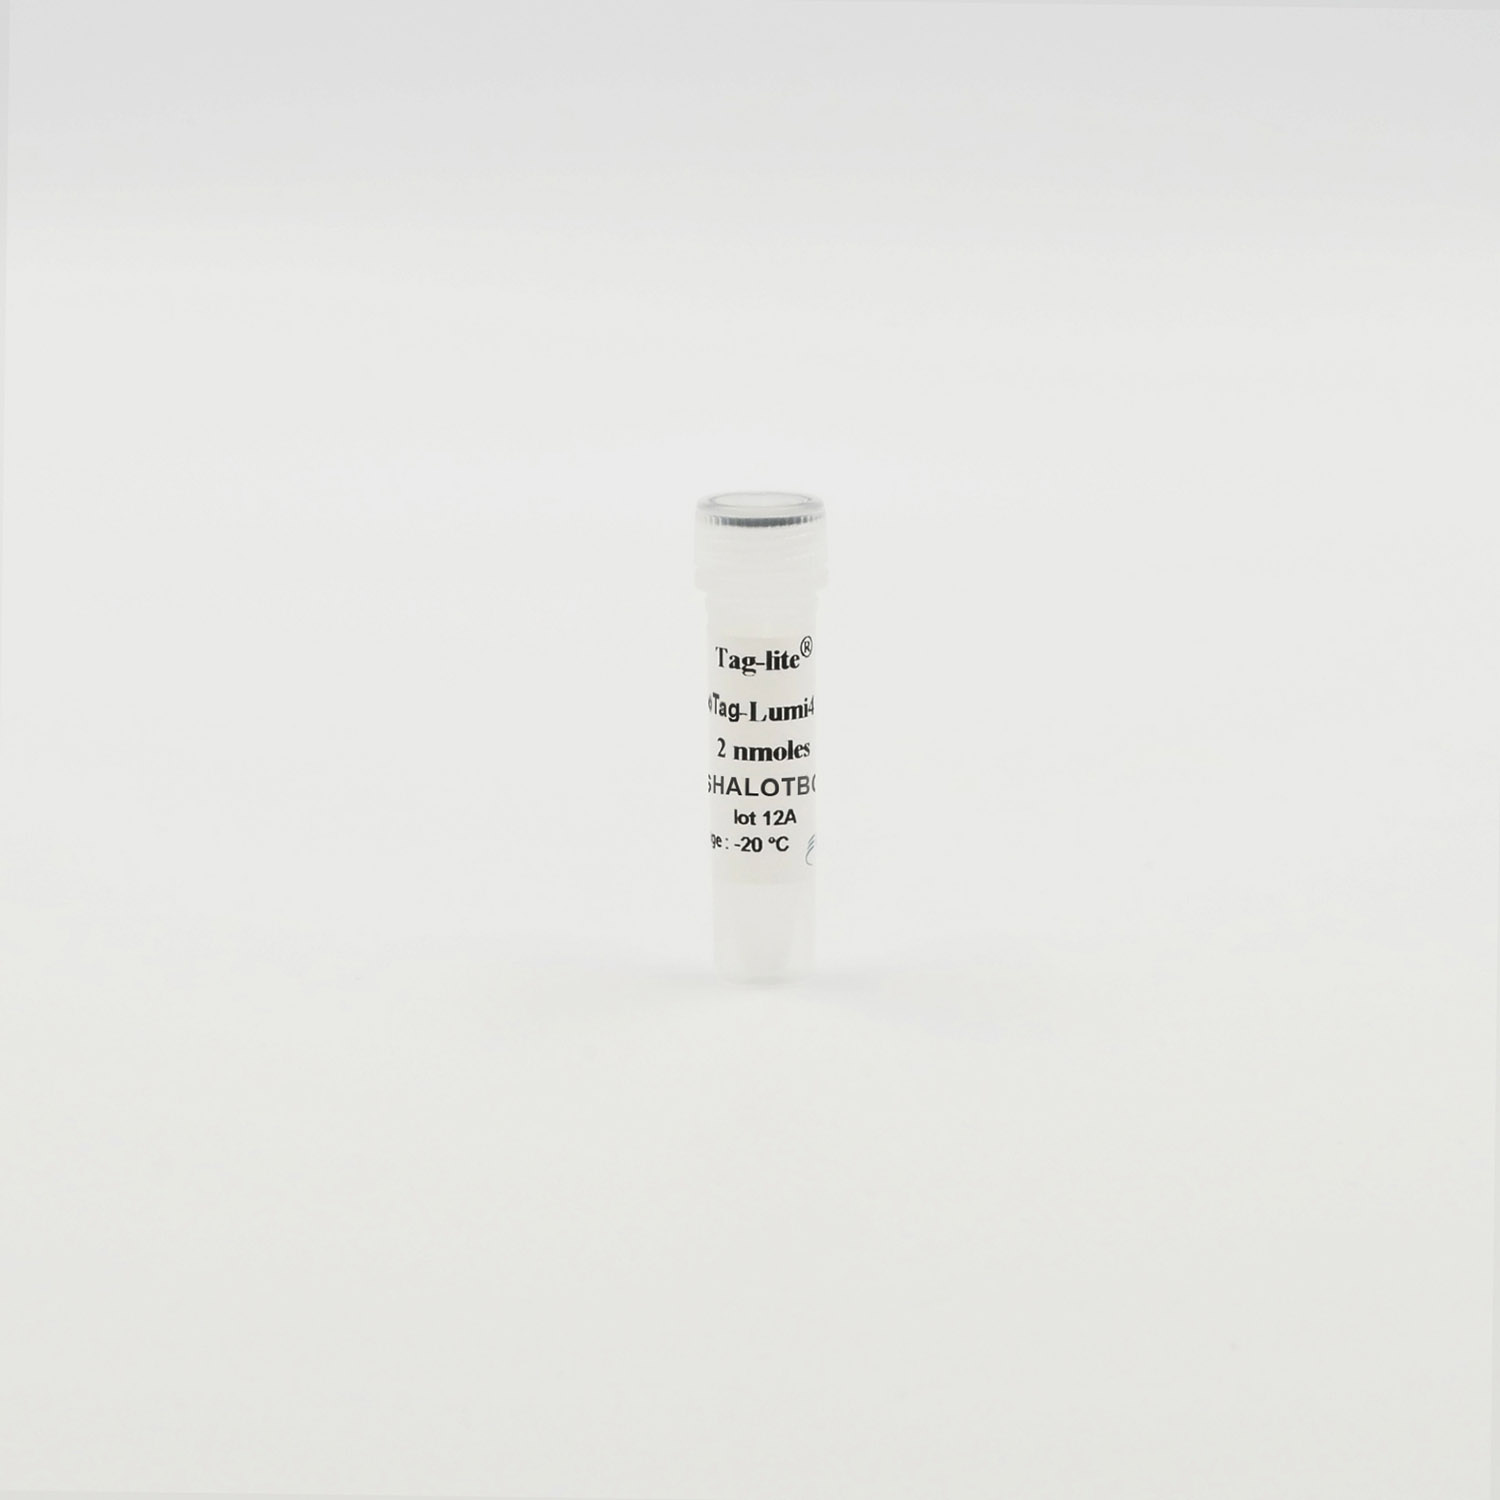 Photography of HaloTag-Lumi4-Tb vial